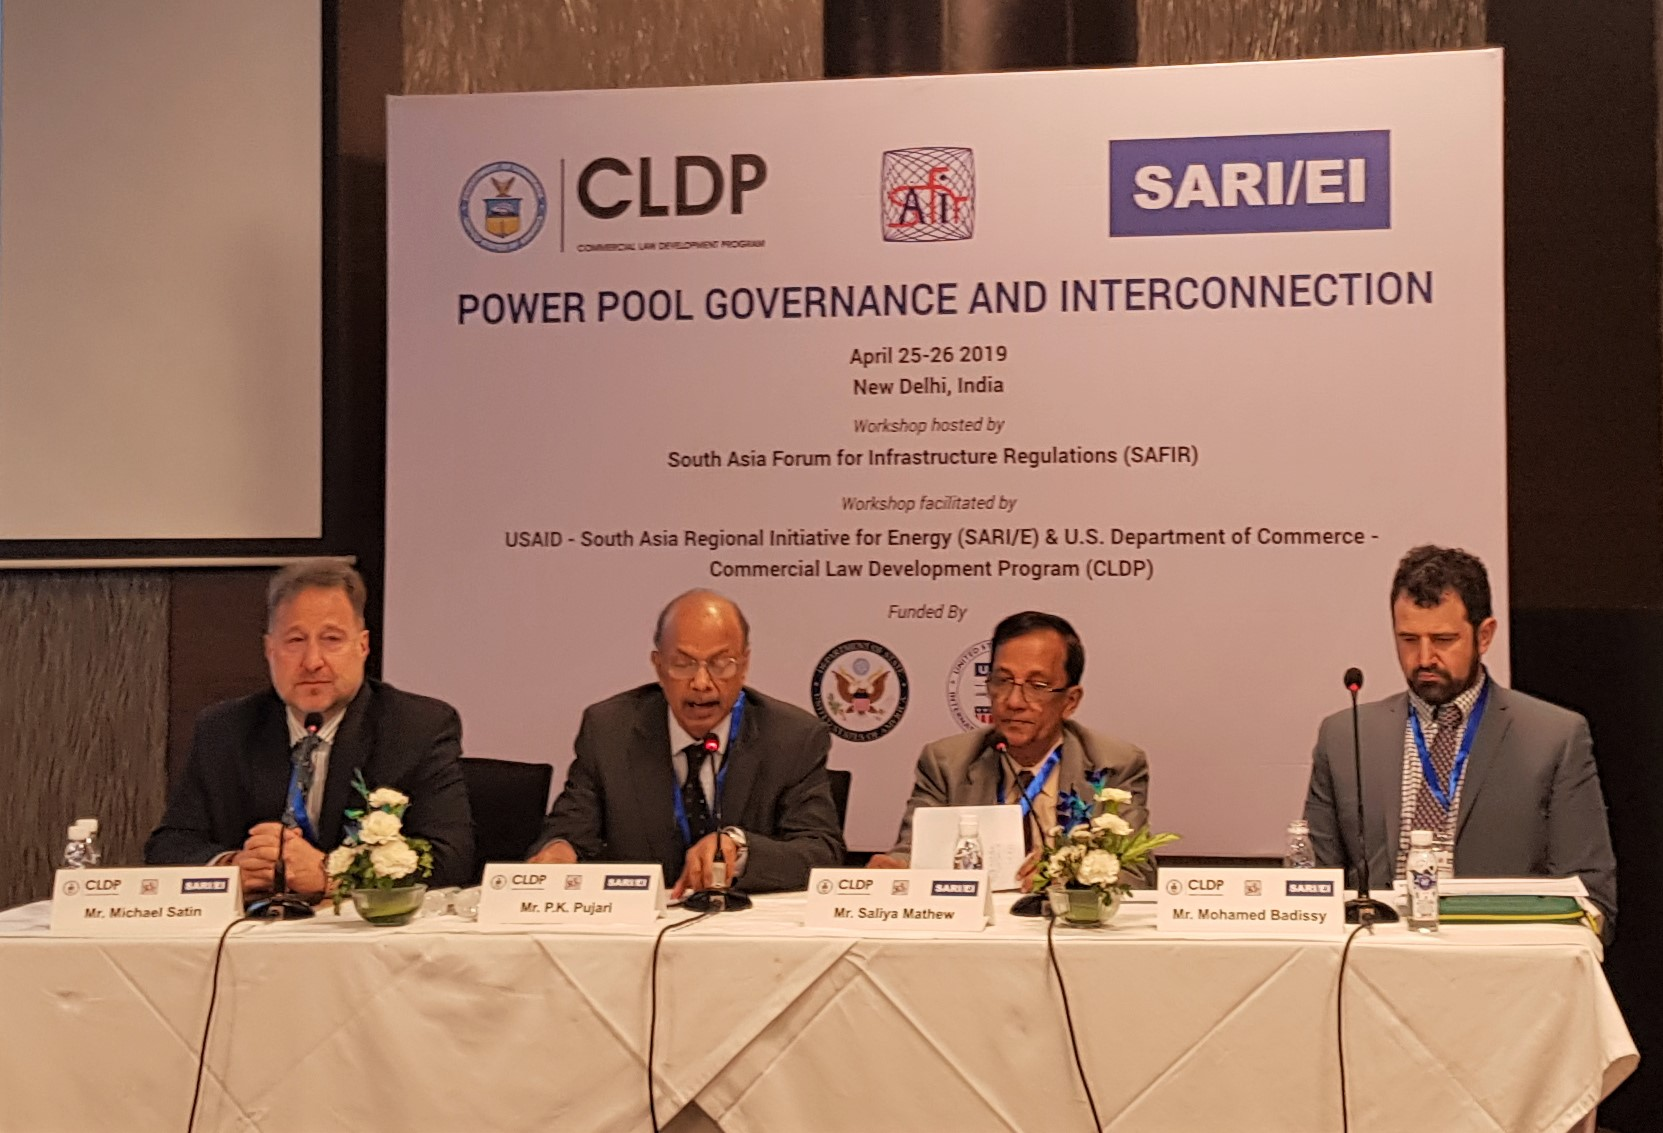 CLDP, SAFIR and SARIEI Workshop on Power Pool Governance and Interconnection